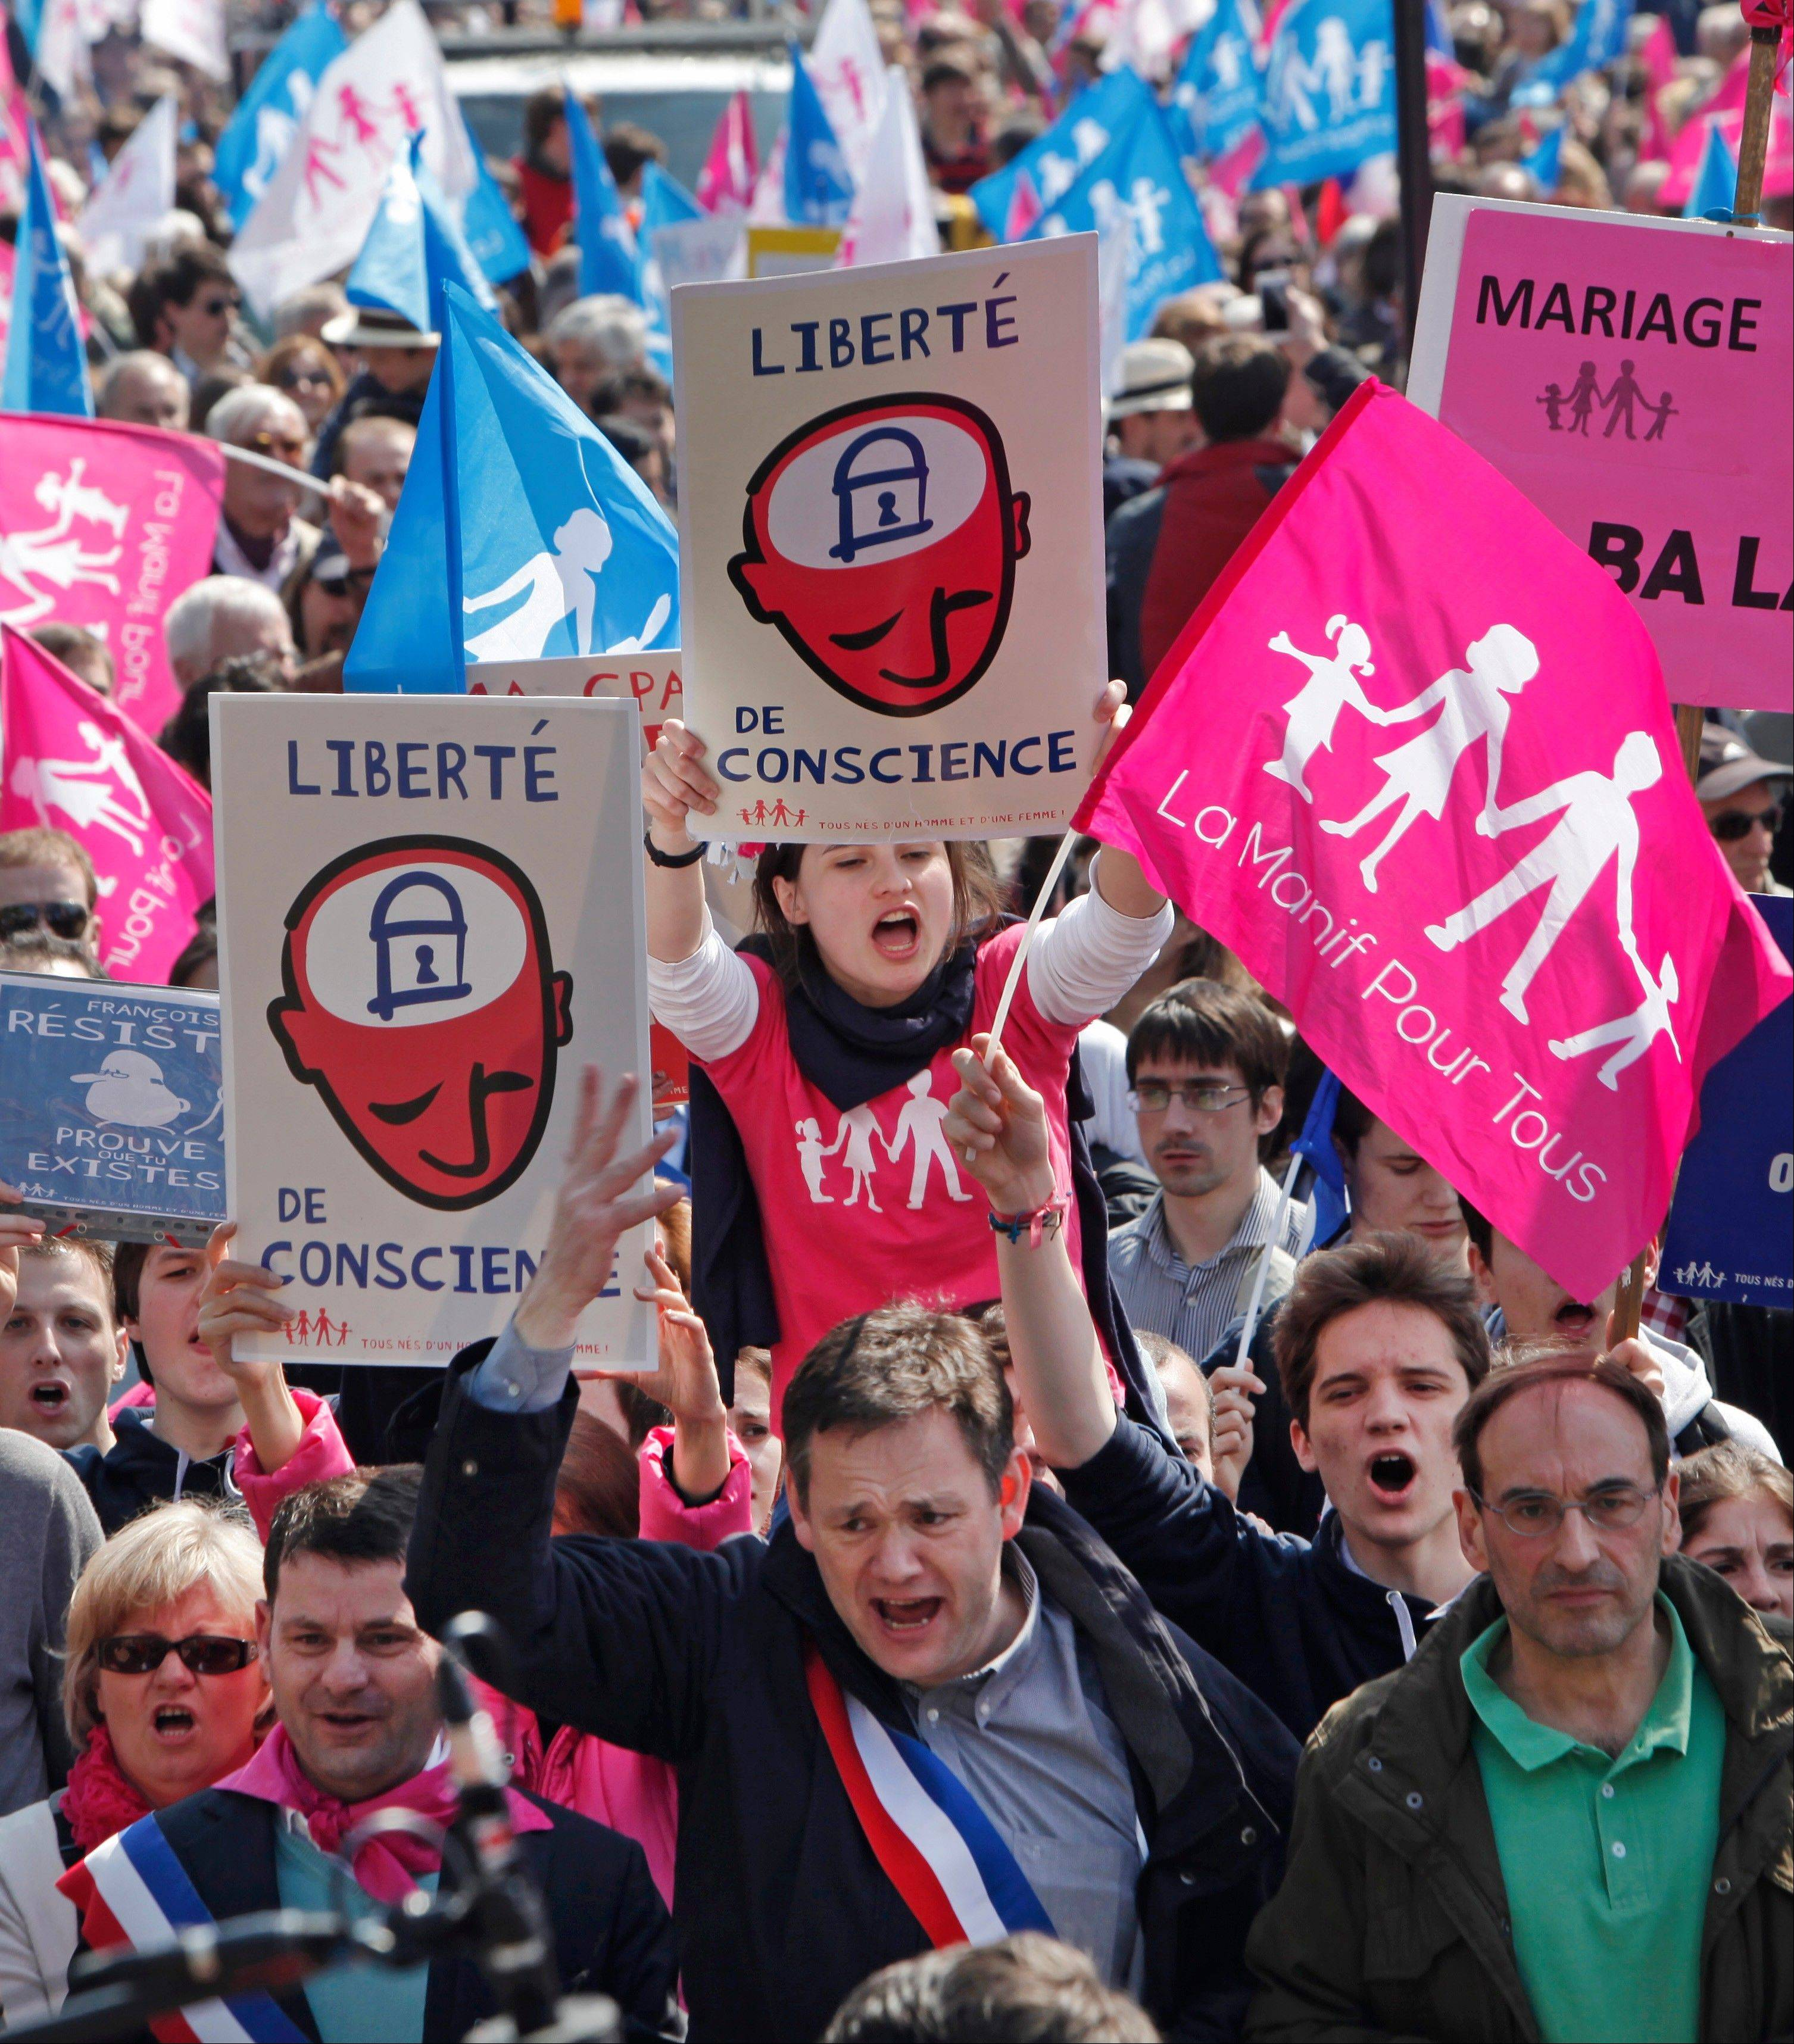 Demonstrators march during a protest Sunday of French President Francois Hollande's social reform on gay marriage and adoption in Paris. Both houses of the French parliament have already approved the bill in a first reading. The second and final reading is expected Tuesday. Signs read: Freedom of Conscience.